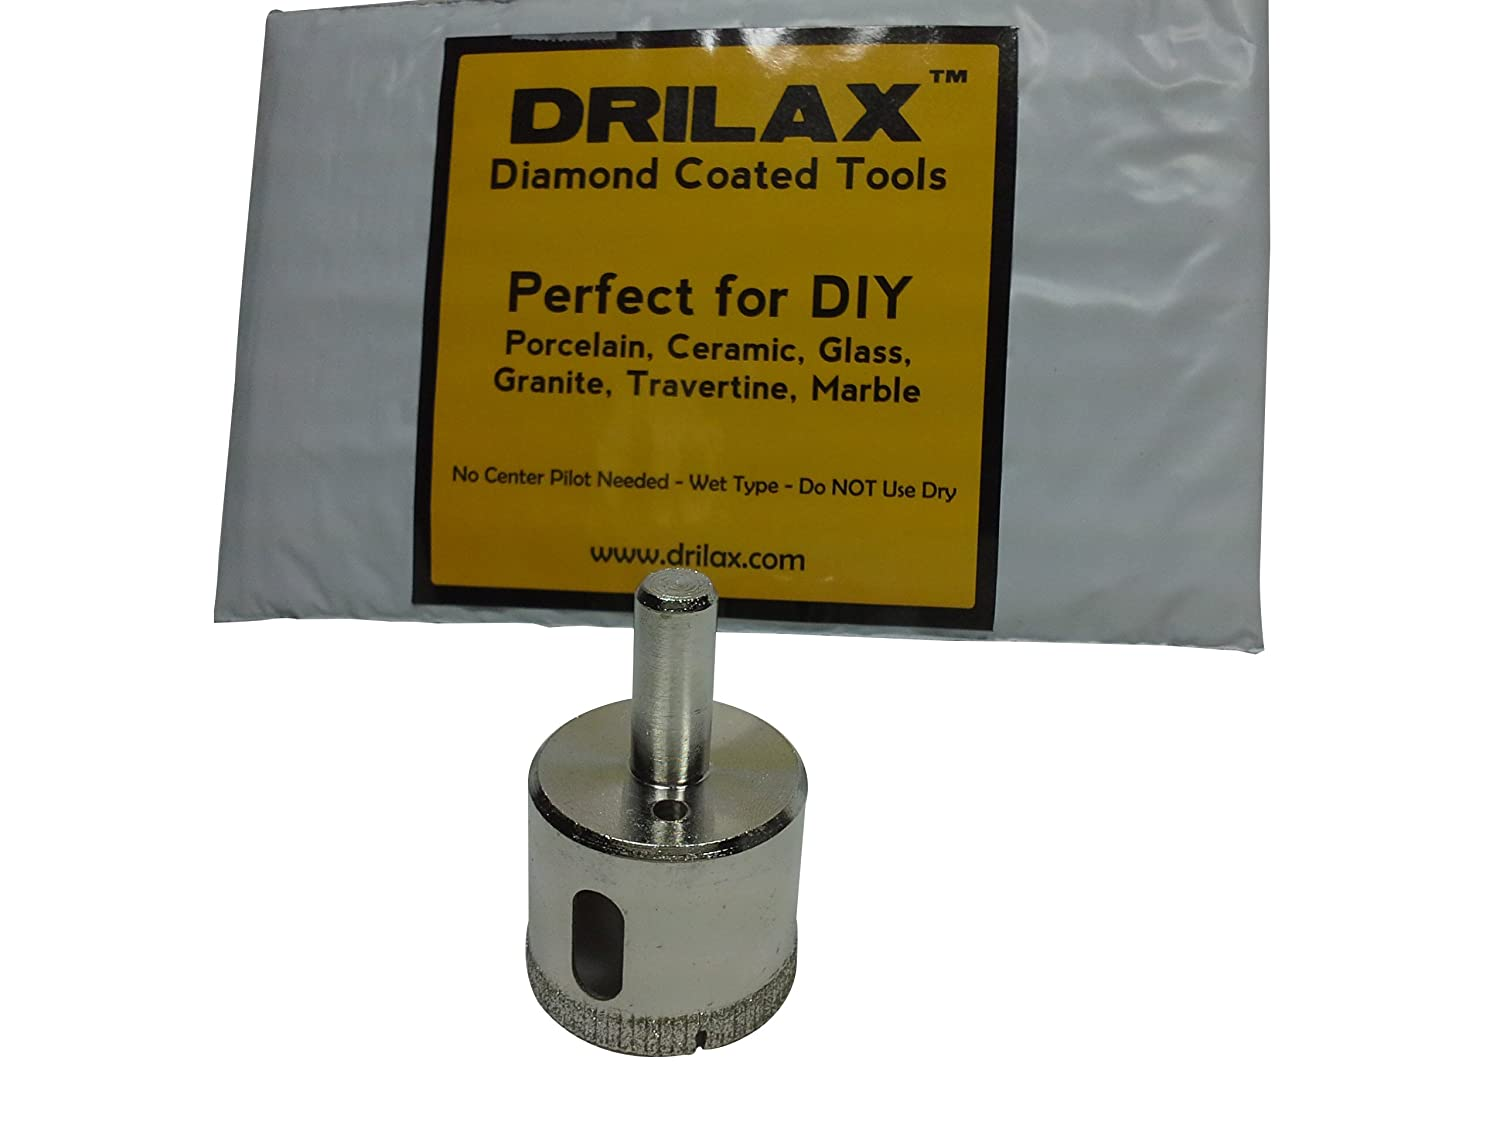 "Drilax 1 1/2 Inch Diamond Hole Saw Drill Bit Tiles, Glass, Fish Tanks, Marble, Granite Countertop, Ceramic, Porcelain, Coated Core Bits Holesaw DIY Kitchen, Bathroom, Shower, Faucet Installation Size 1-1/2"" Inches"